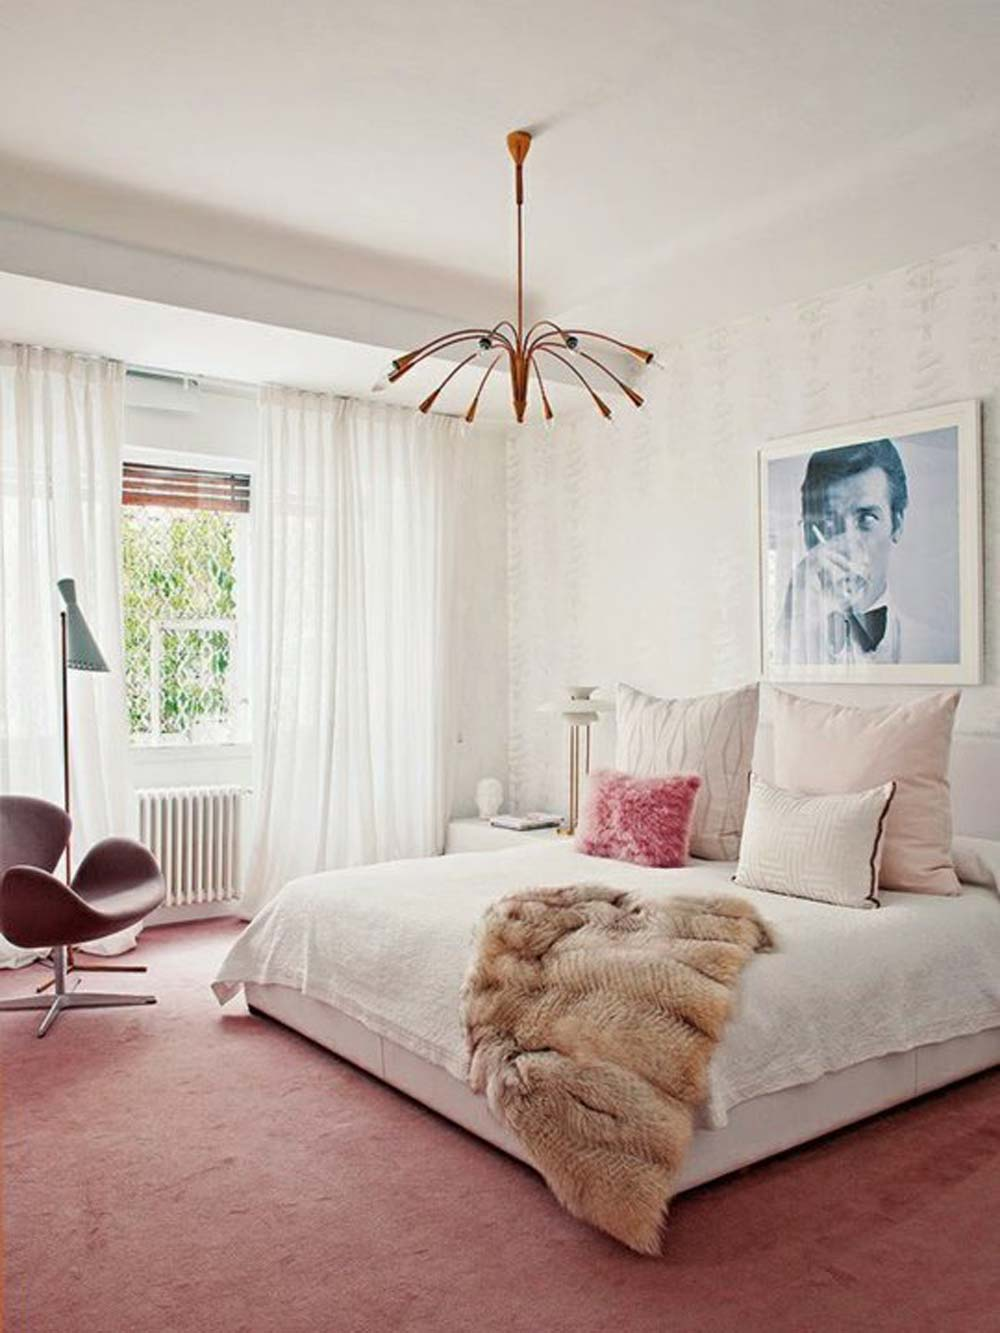 Not only are they an opportunity to add style and character, they're also a very practical accent piece. 10 Perfect Pink Bedrooms – Design*Sponge